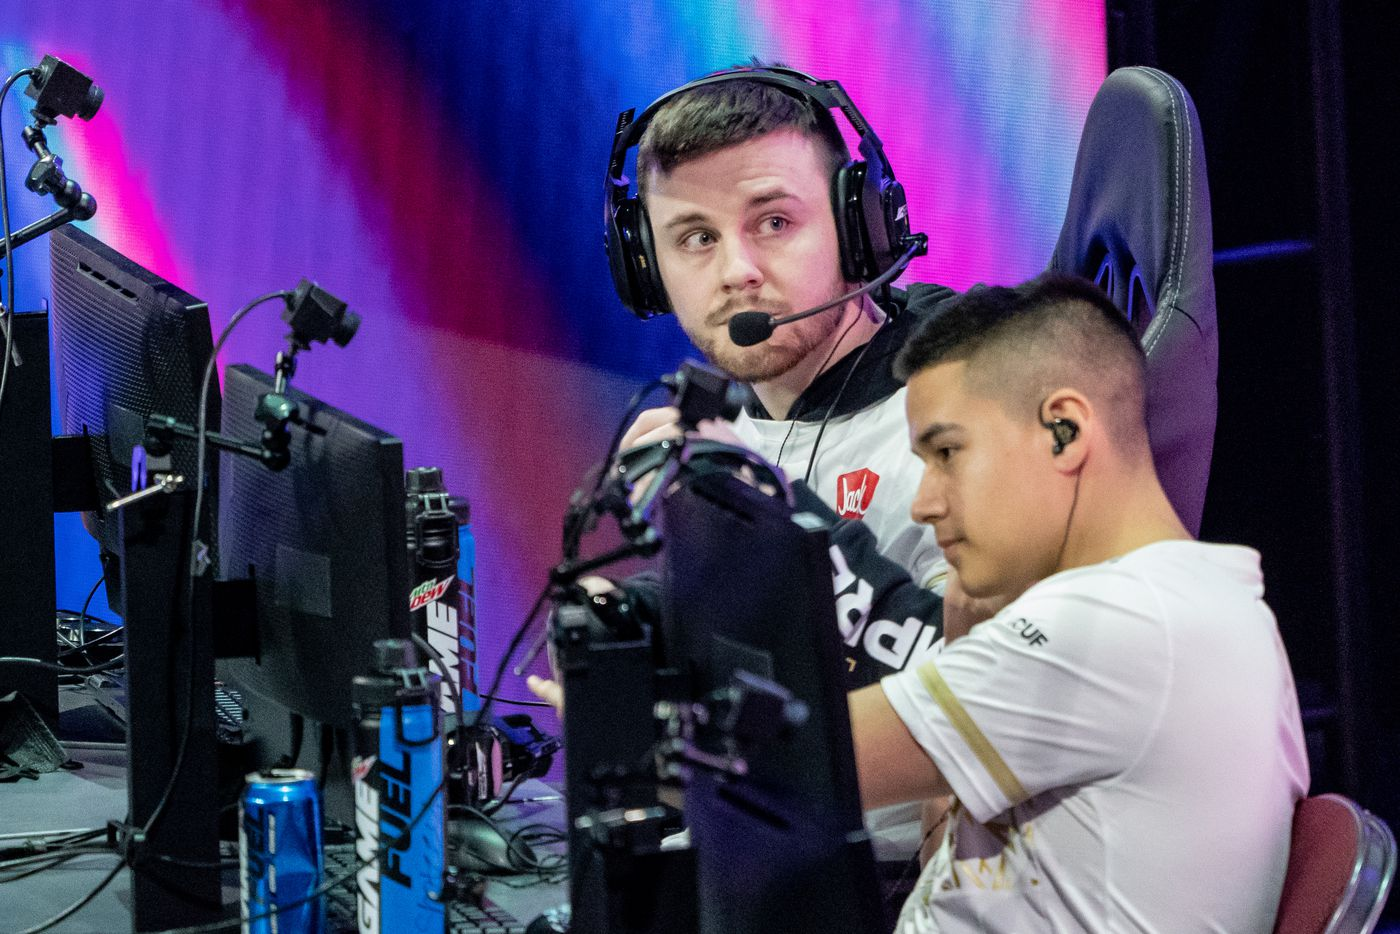 """From left, Reece """"Vivid"""" Drost and  Anthony """"Shotzzy"""" Cuevas-Castro react to the Dallas Empires elimination from the  Call of Duty league playoffs at the Galen Center on Saturday, August 21, 2021 in Los Angeles, California. The Empire lost to Toronto Ultra 2 - 3, eliminating them from the tournament. (Justin L. Stewart/Special Contributor)"""